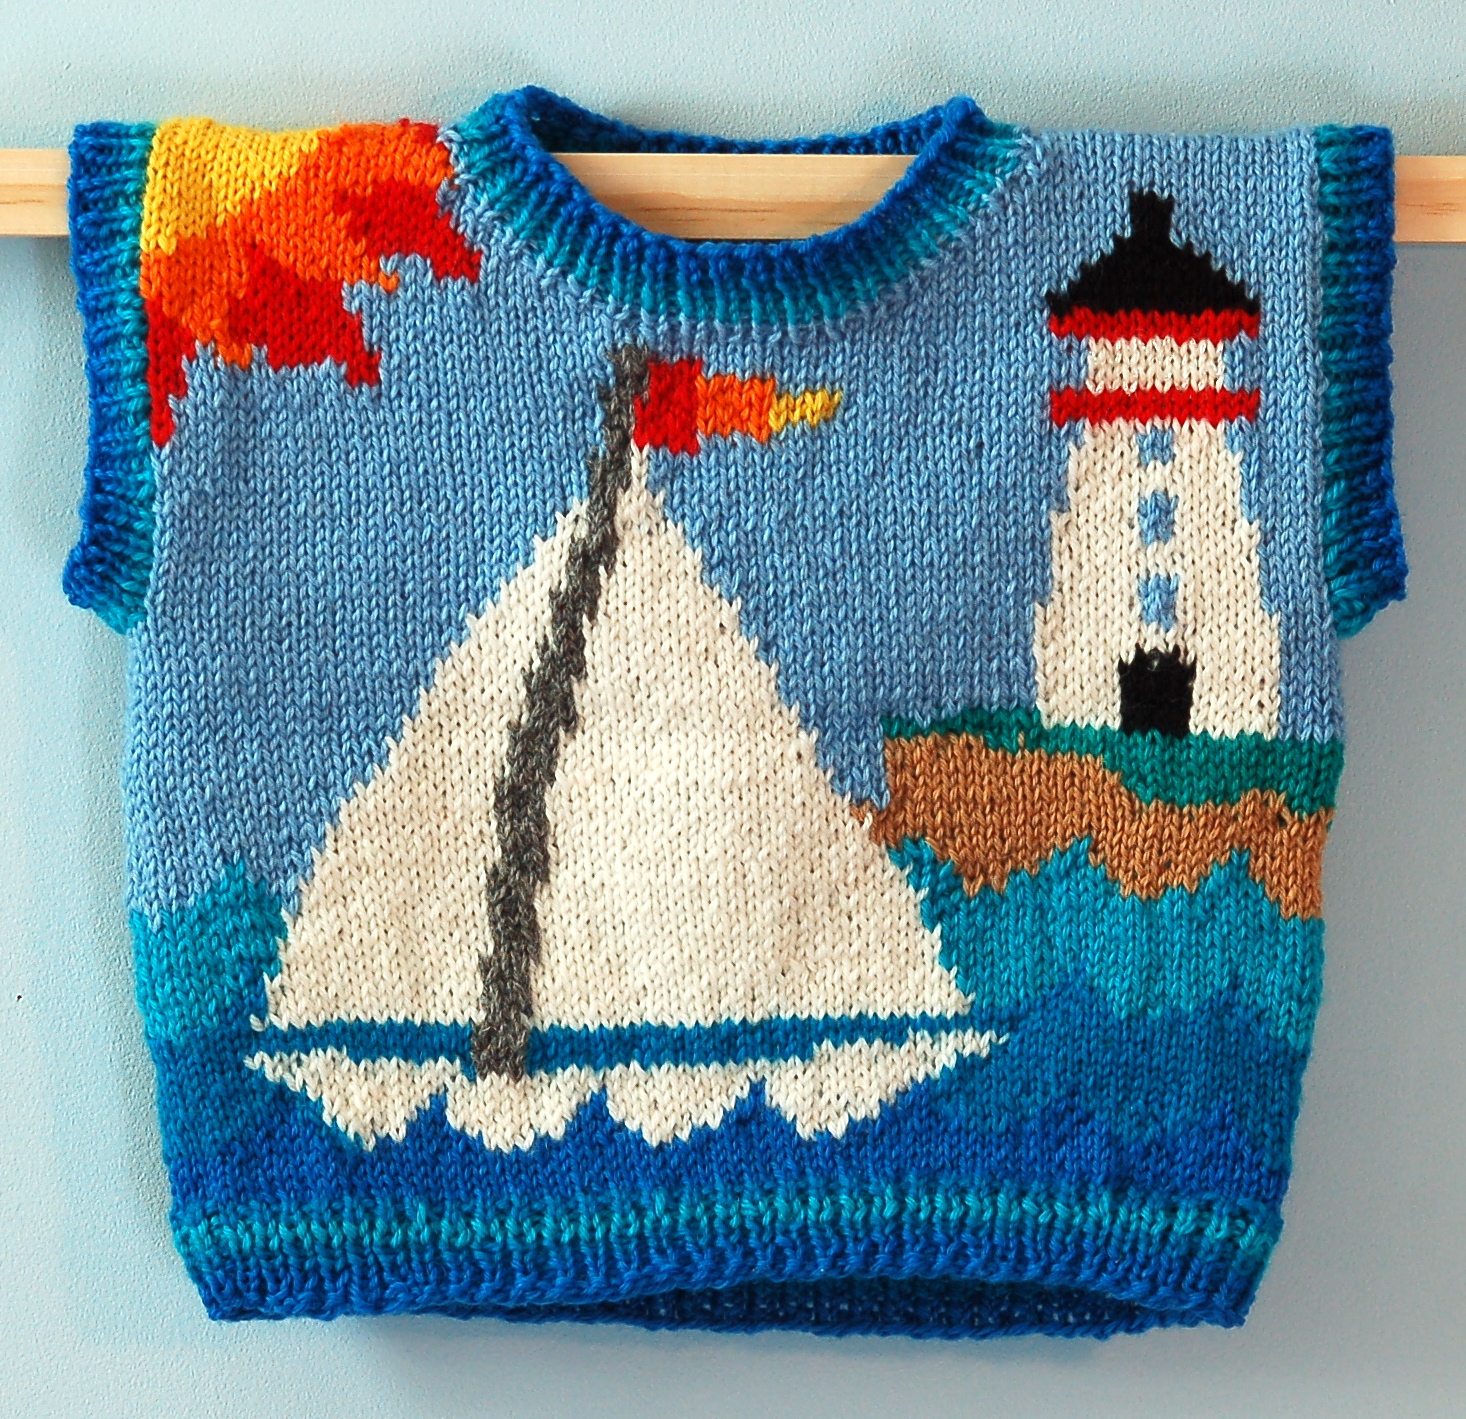 ONE YEAR: LIGHTHOUSE FRONT    On the front is a sailboat gliding past a lighthouse. On the back is a tugboat. The sun and island are continuous. The ribbing at the neck, armhole openings, and hem is shades of blue.